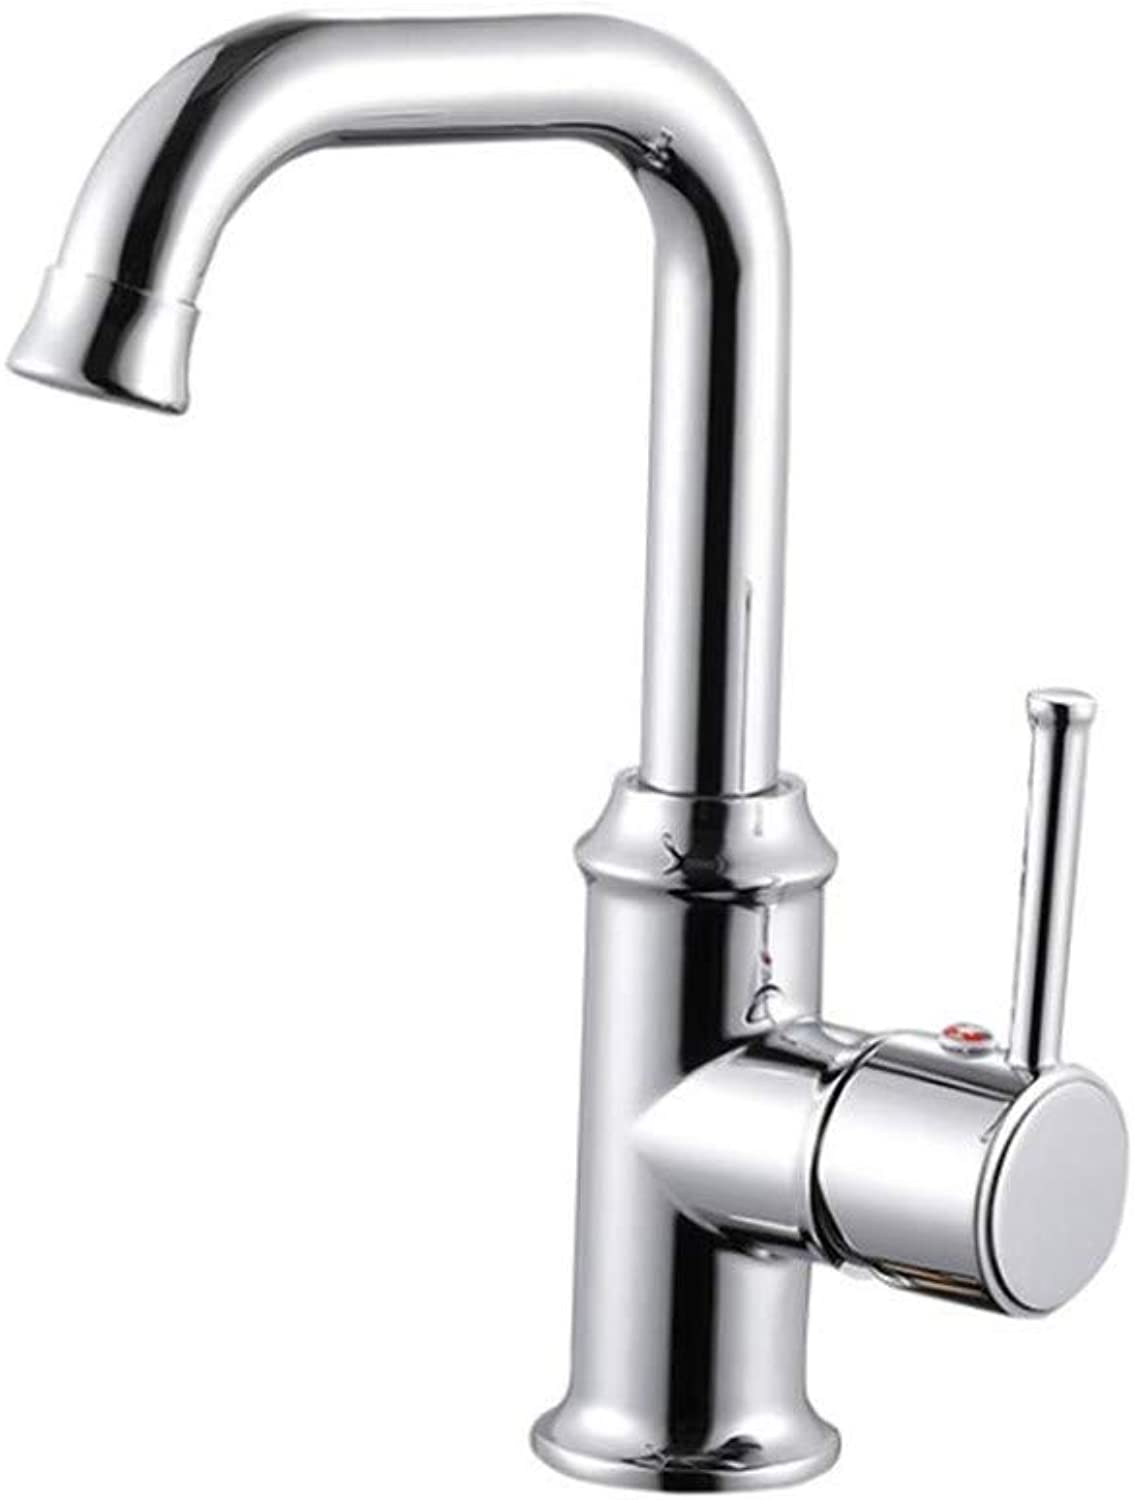 Water Tap Kitchen Taps Faucet Modern Kitchen Sink Taps Stainless Steelthe 360-Degree redating Faucet in The Sink of The Cold and Hot Dishwasher